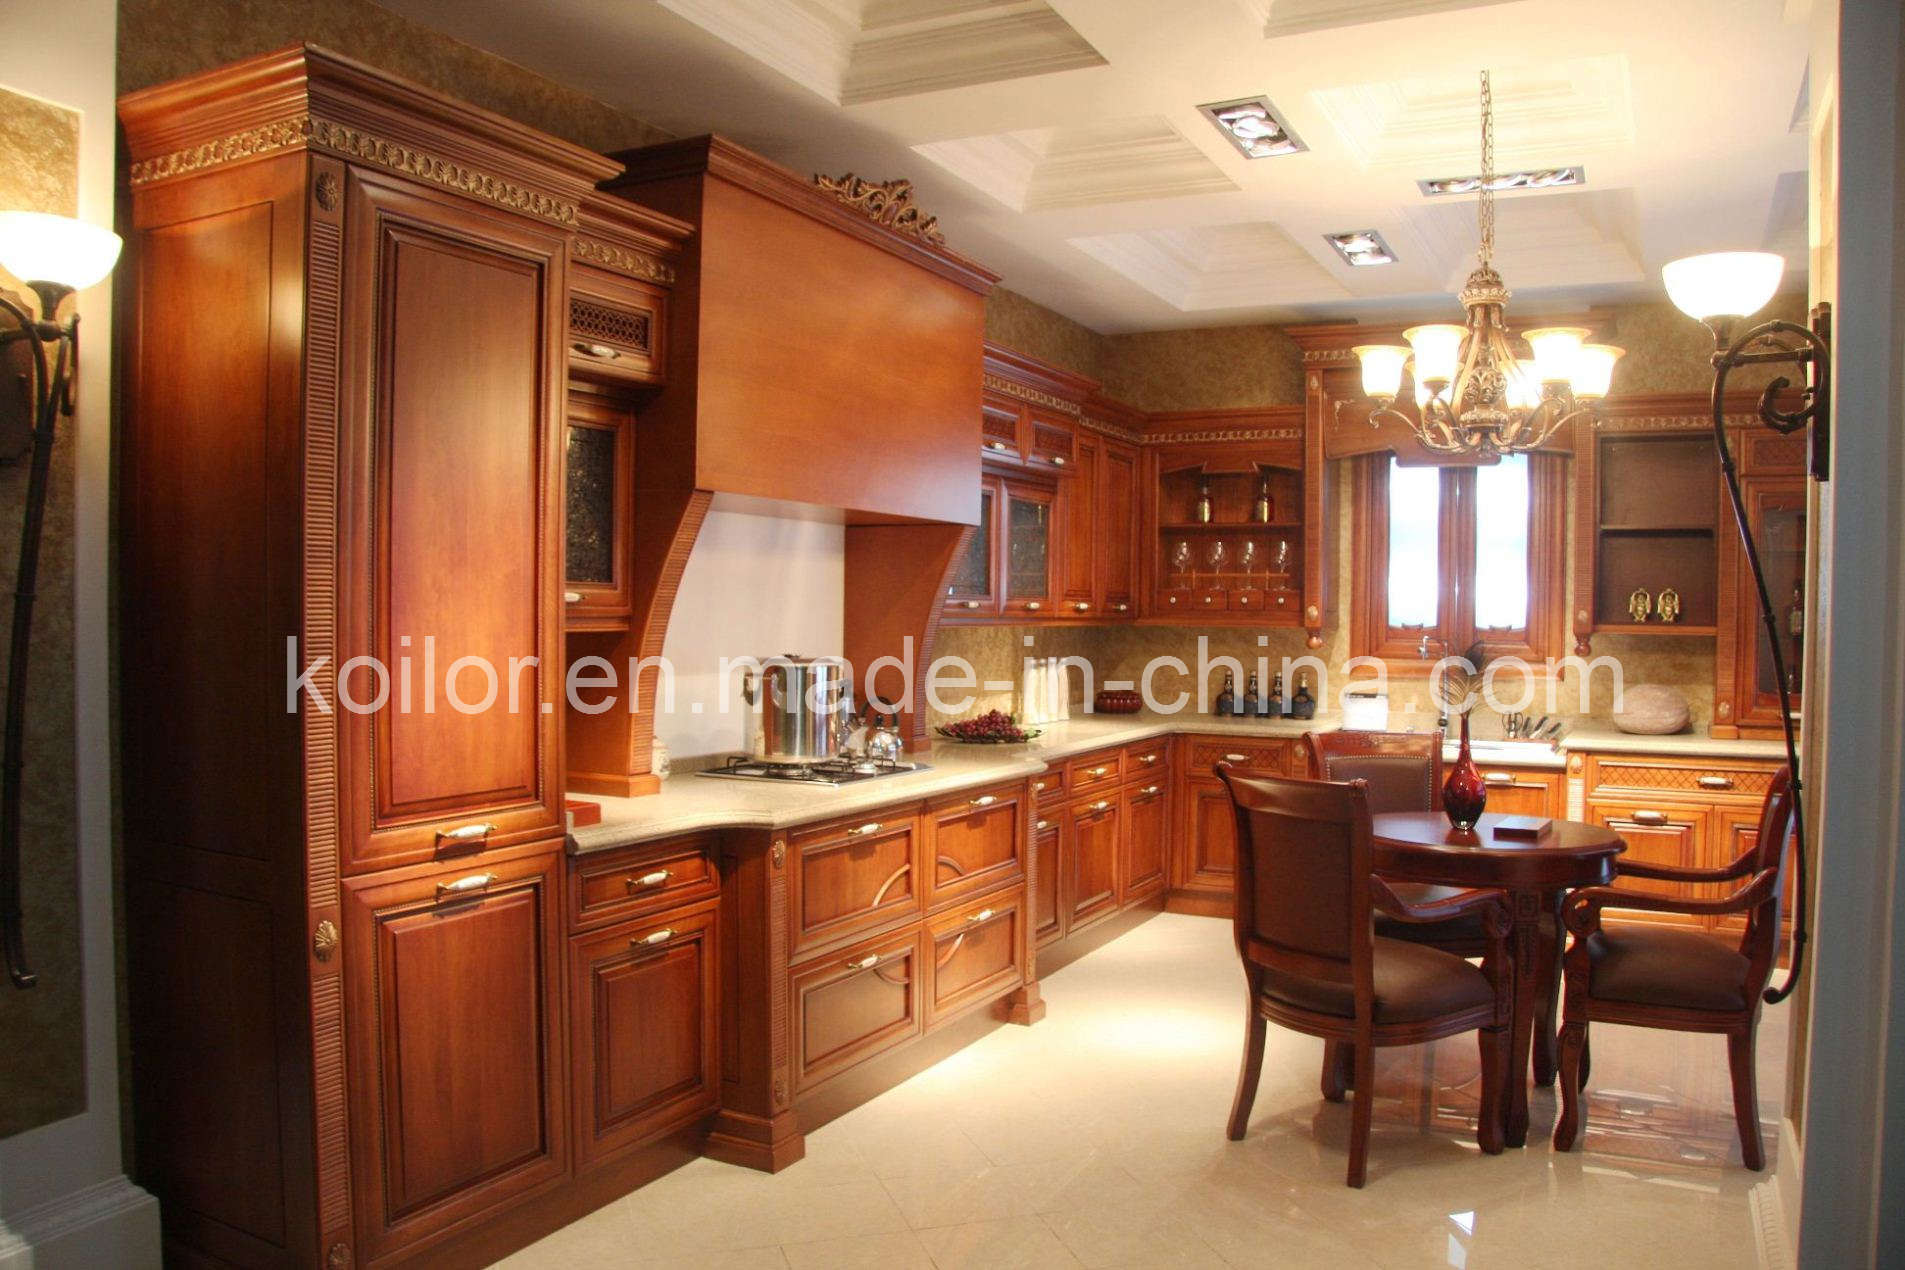 kitchen cabinets wood solid wood kitchen cabinets All Solid Wood KITCHEN CABINETS